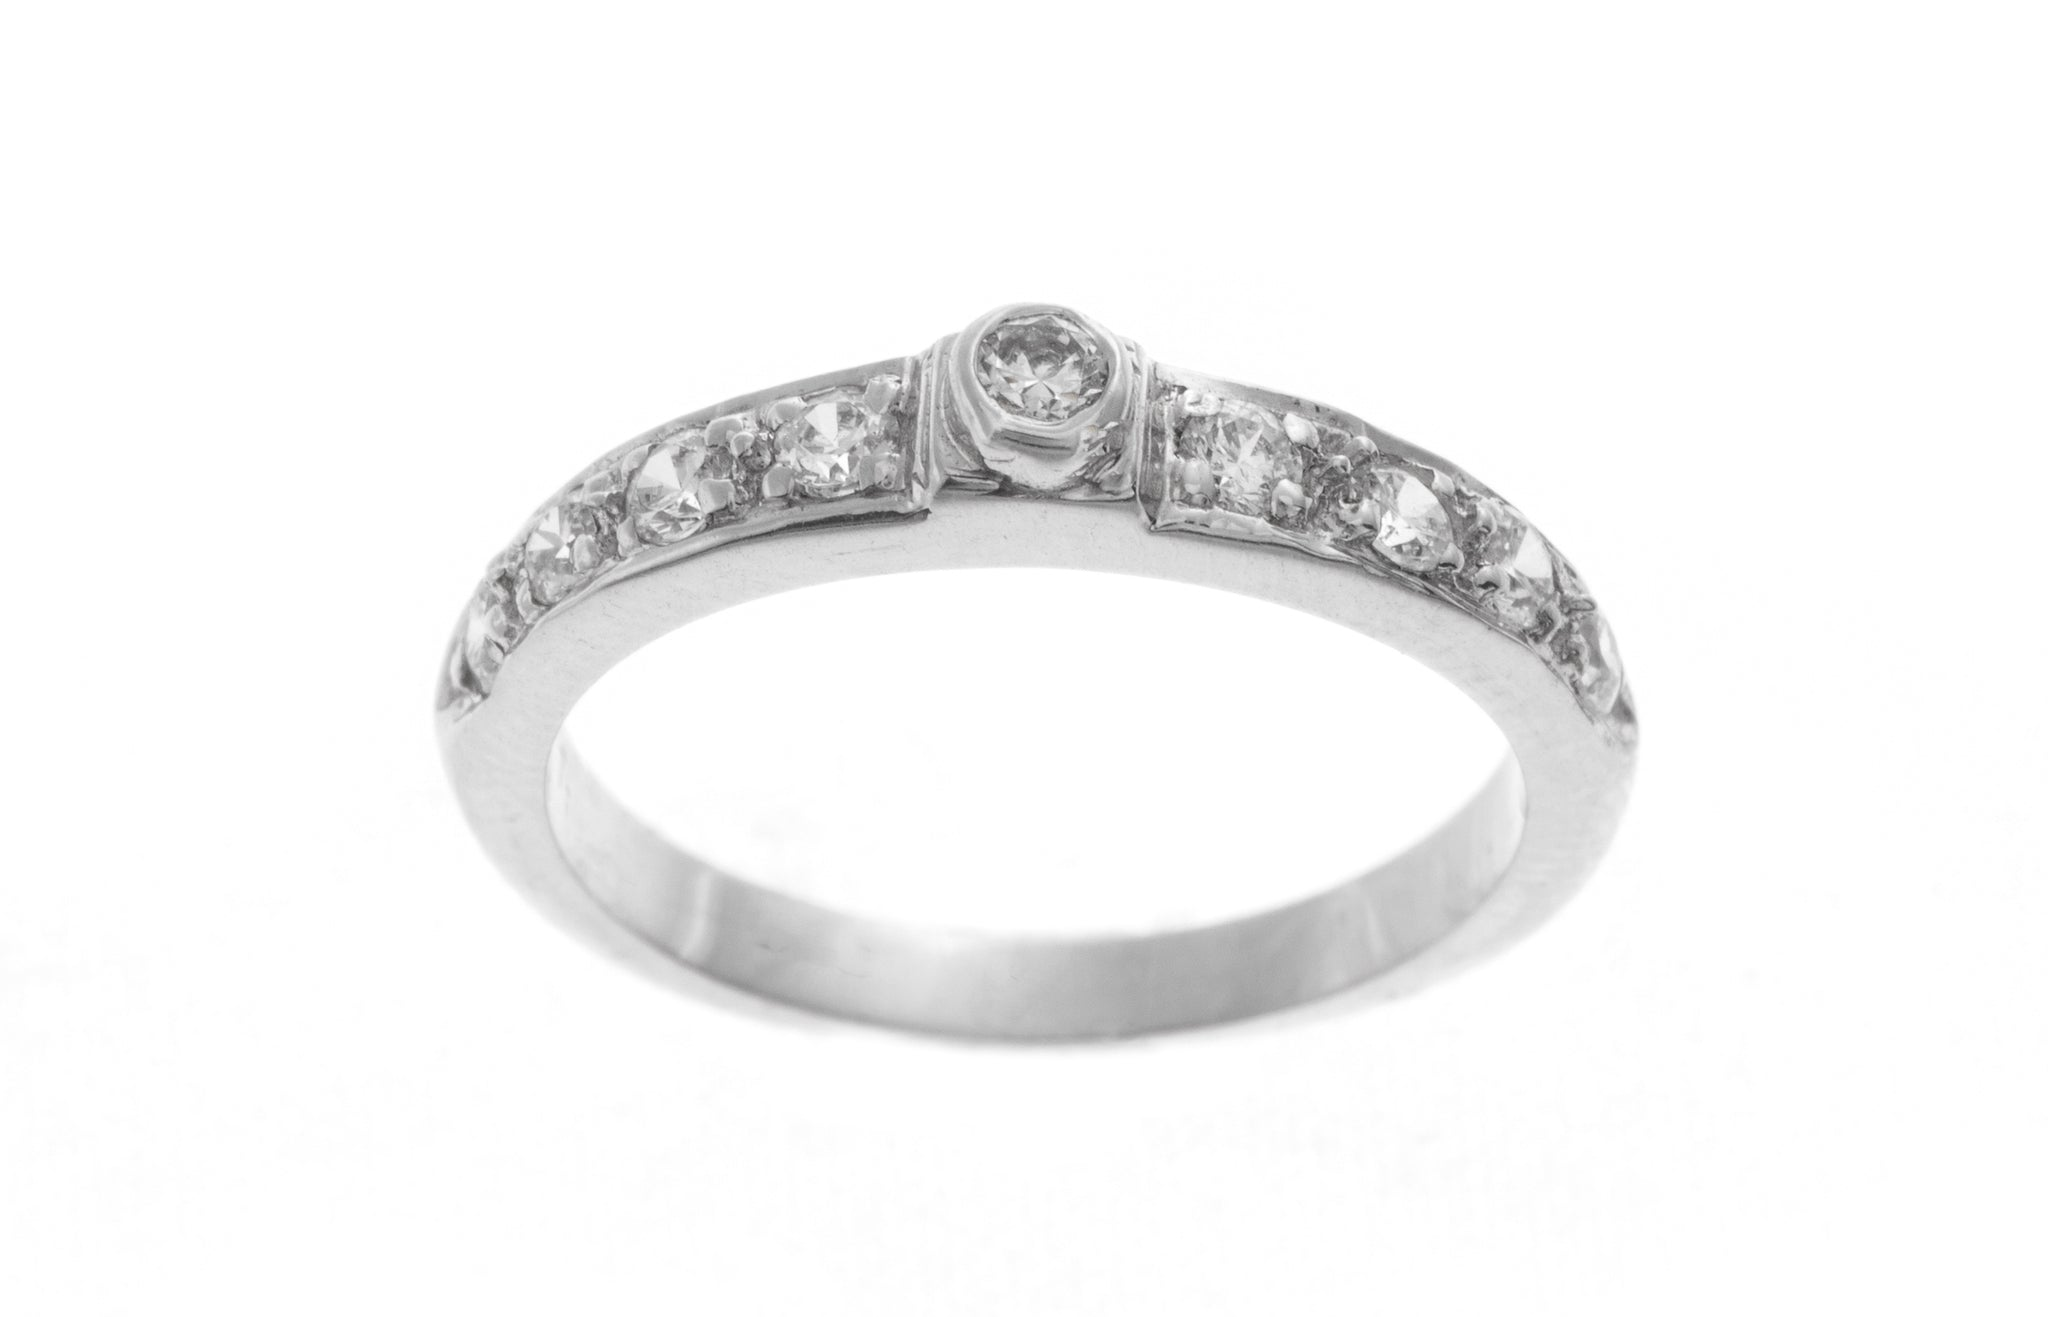 18ct White Gold Cubic Zirconia Engagement Ring (2.8g) LR-2536